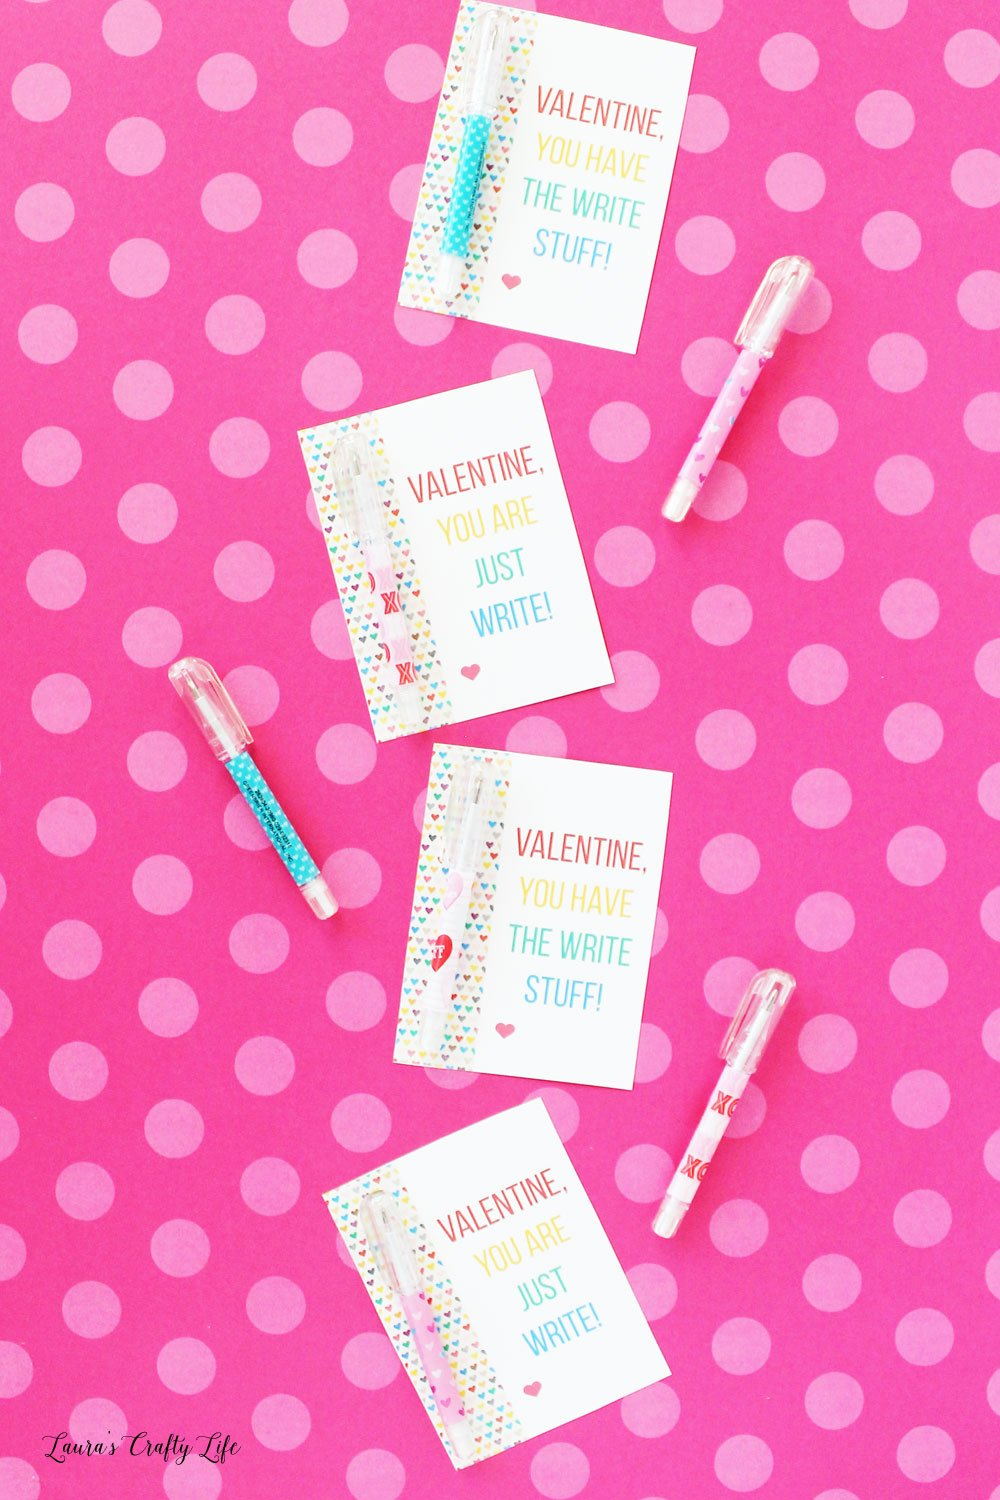 Free printable Valentine cards you can use with a pen or pencil favor